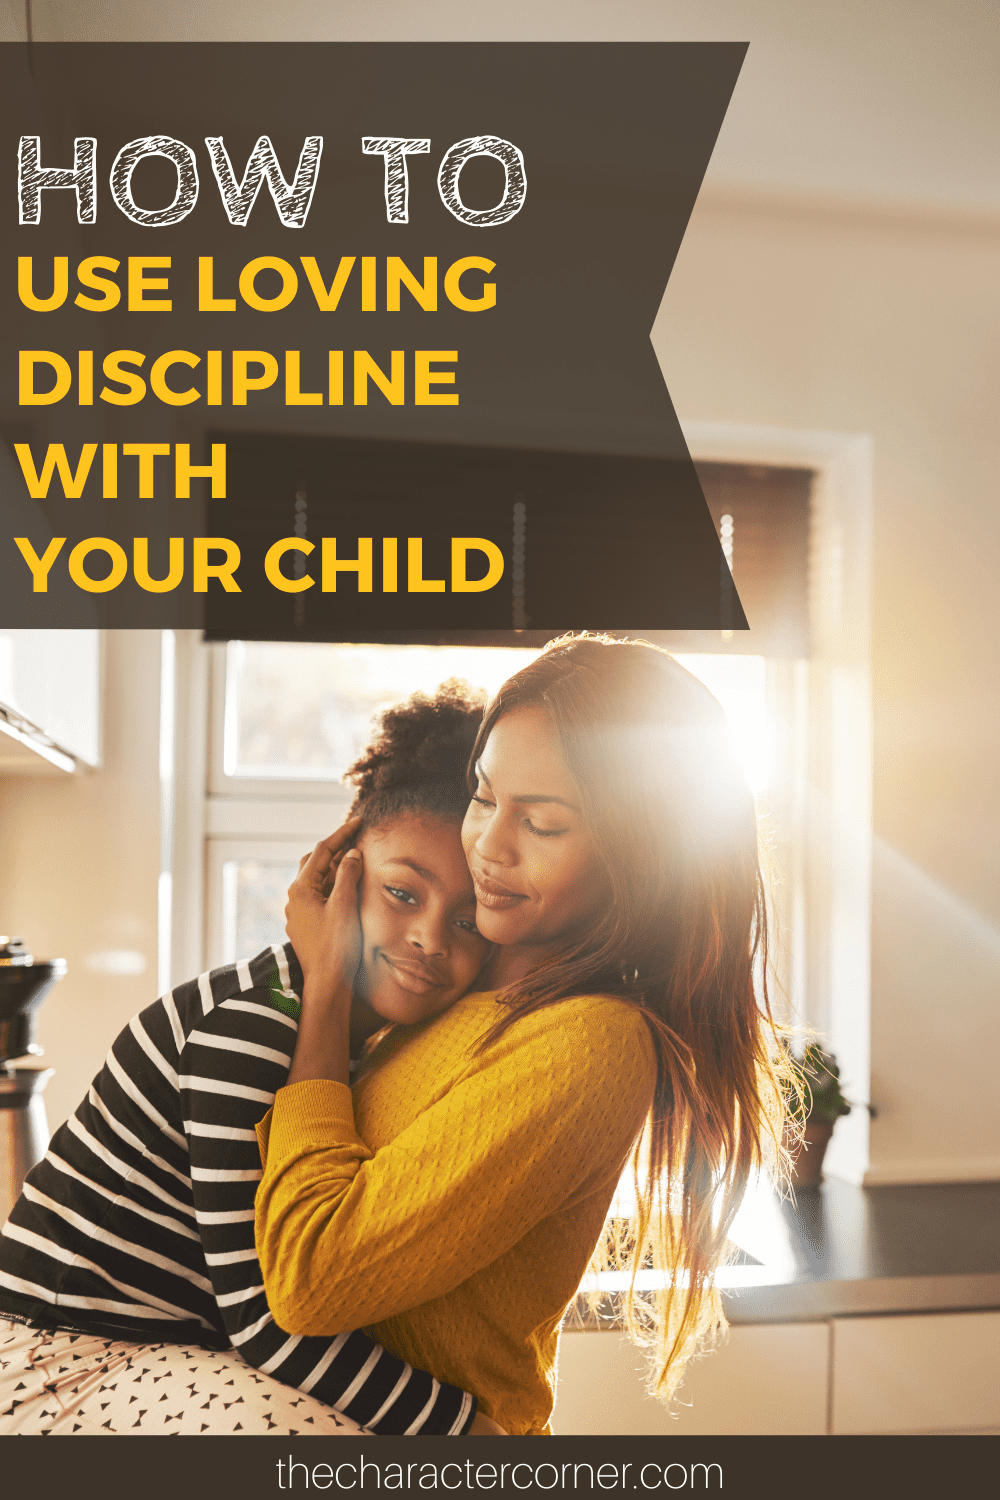 text on image reads How To Use Loving Discipline With Your Child